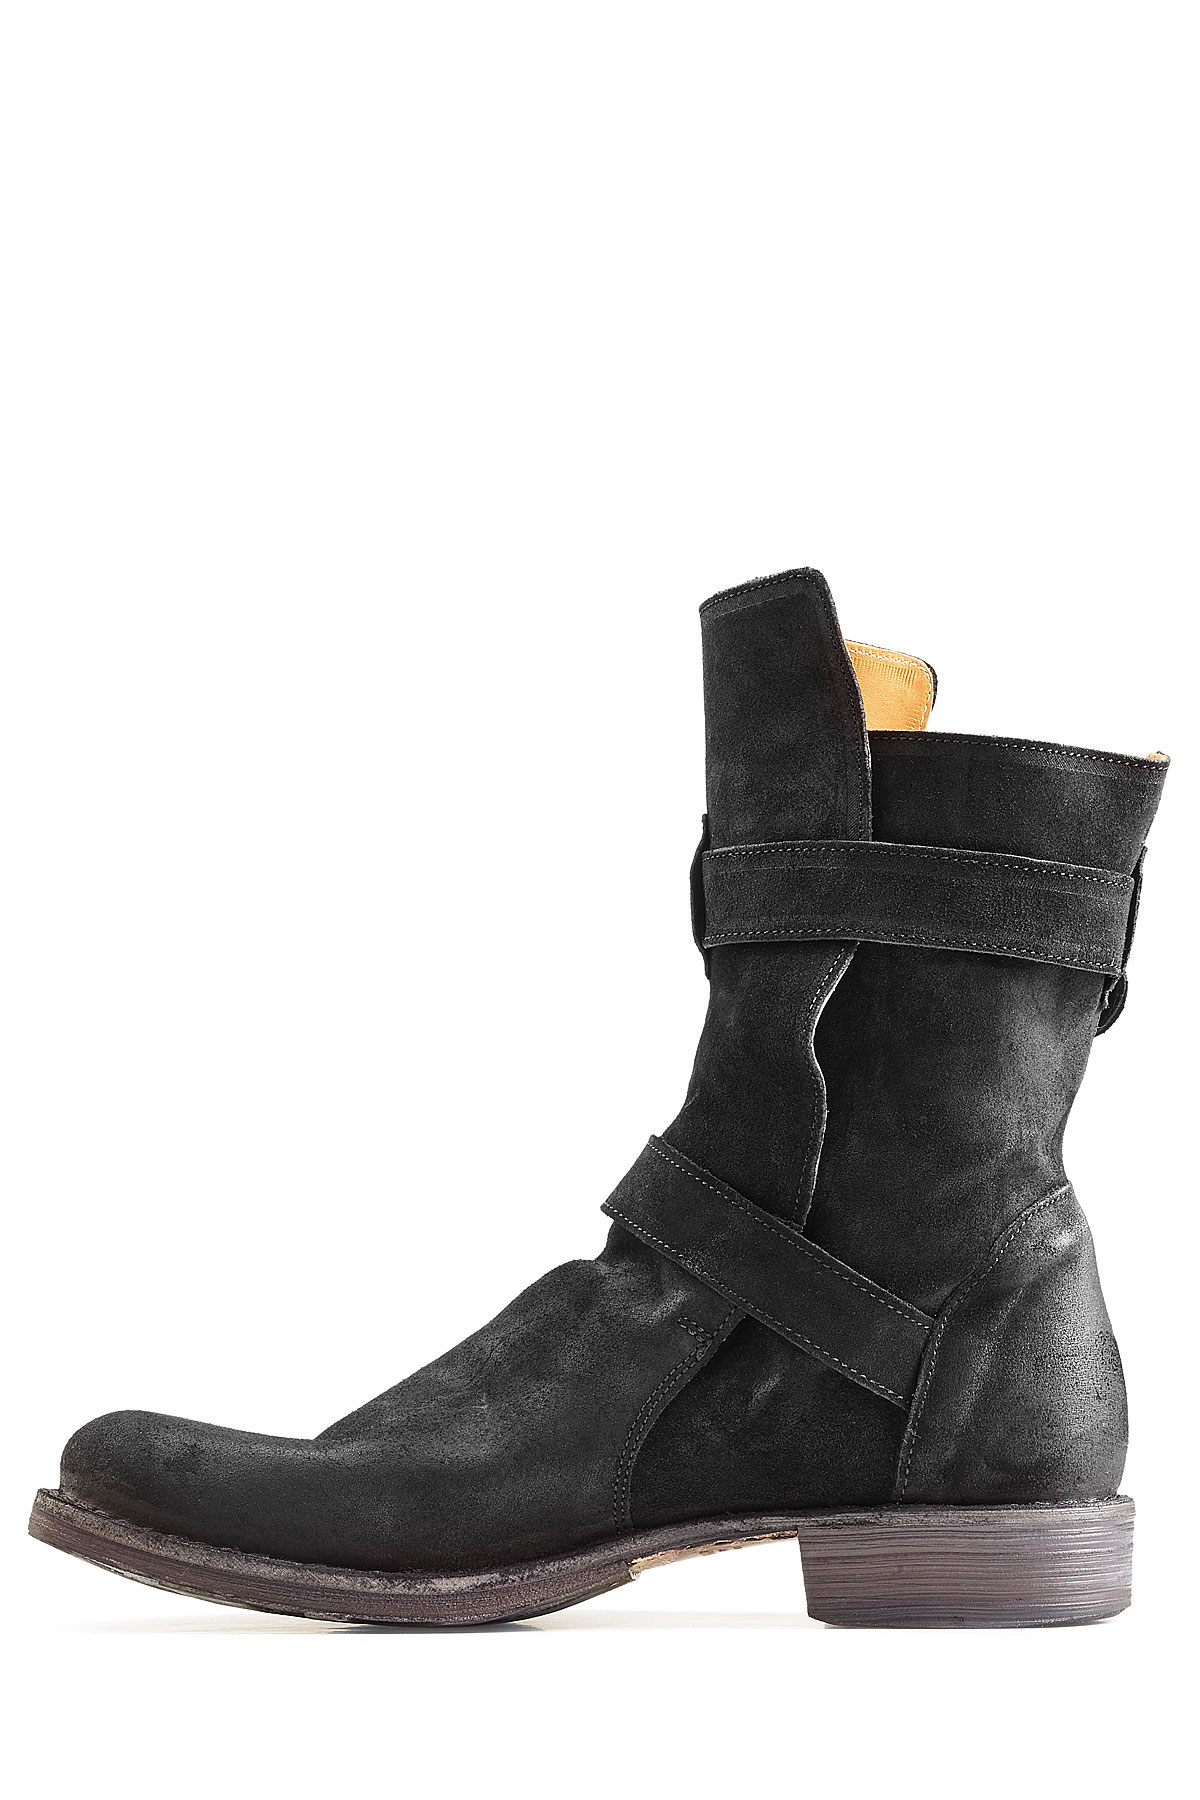 fiorentini baker suede boots black in black for lyst